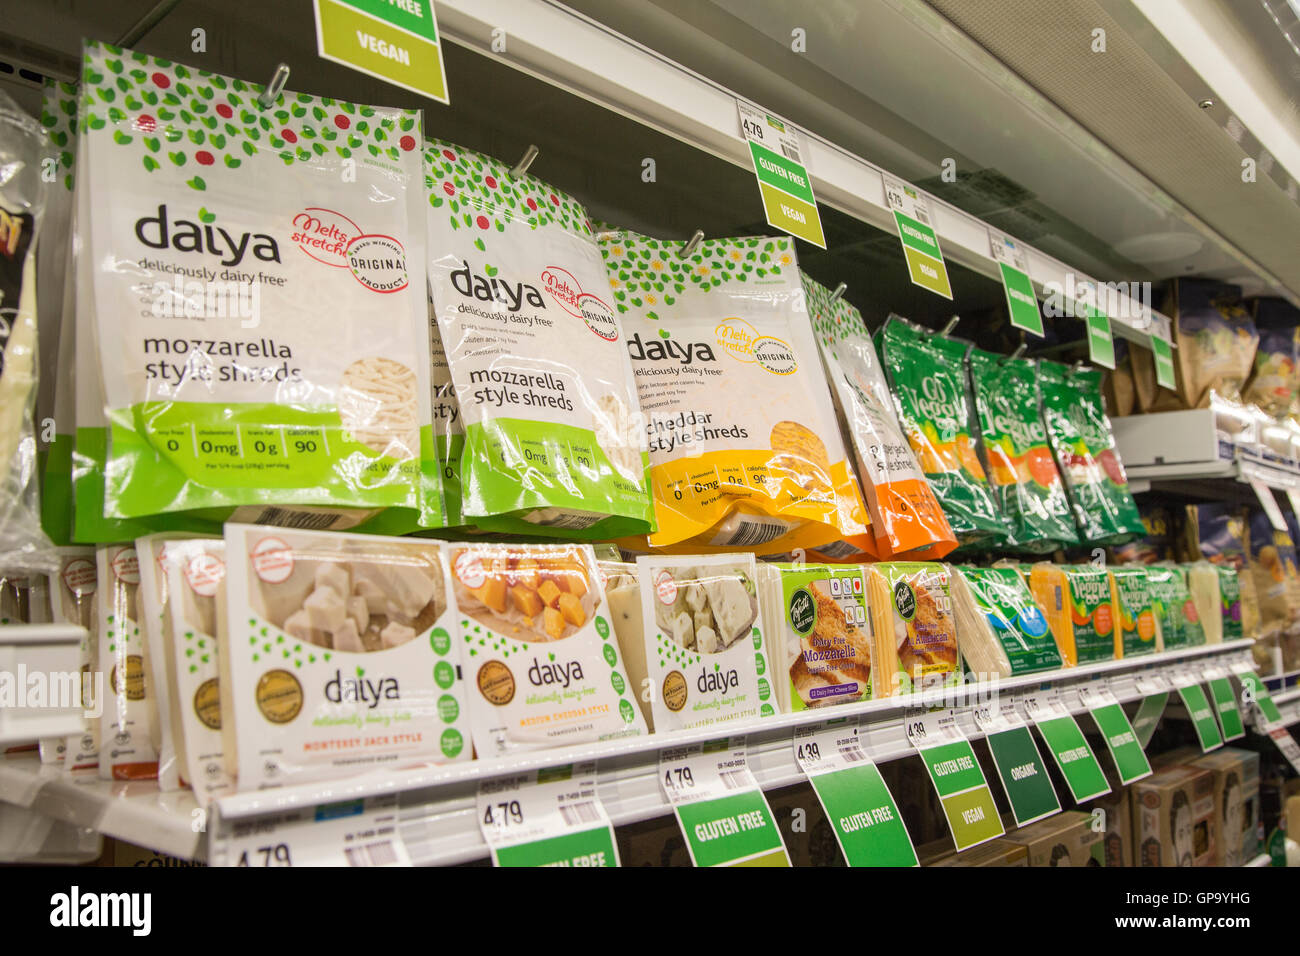 A display of Daiya dairy free cheeses in the refrigerator case at the grocery store. - Stock Image